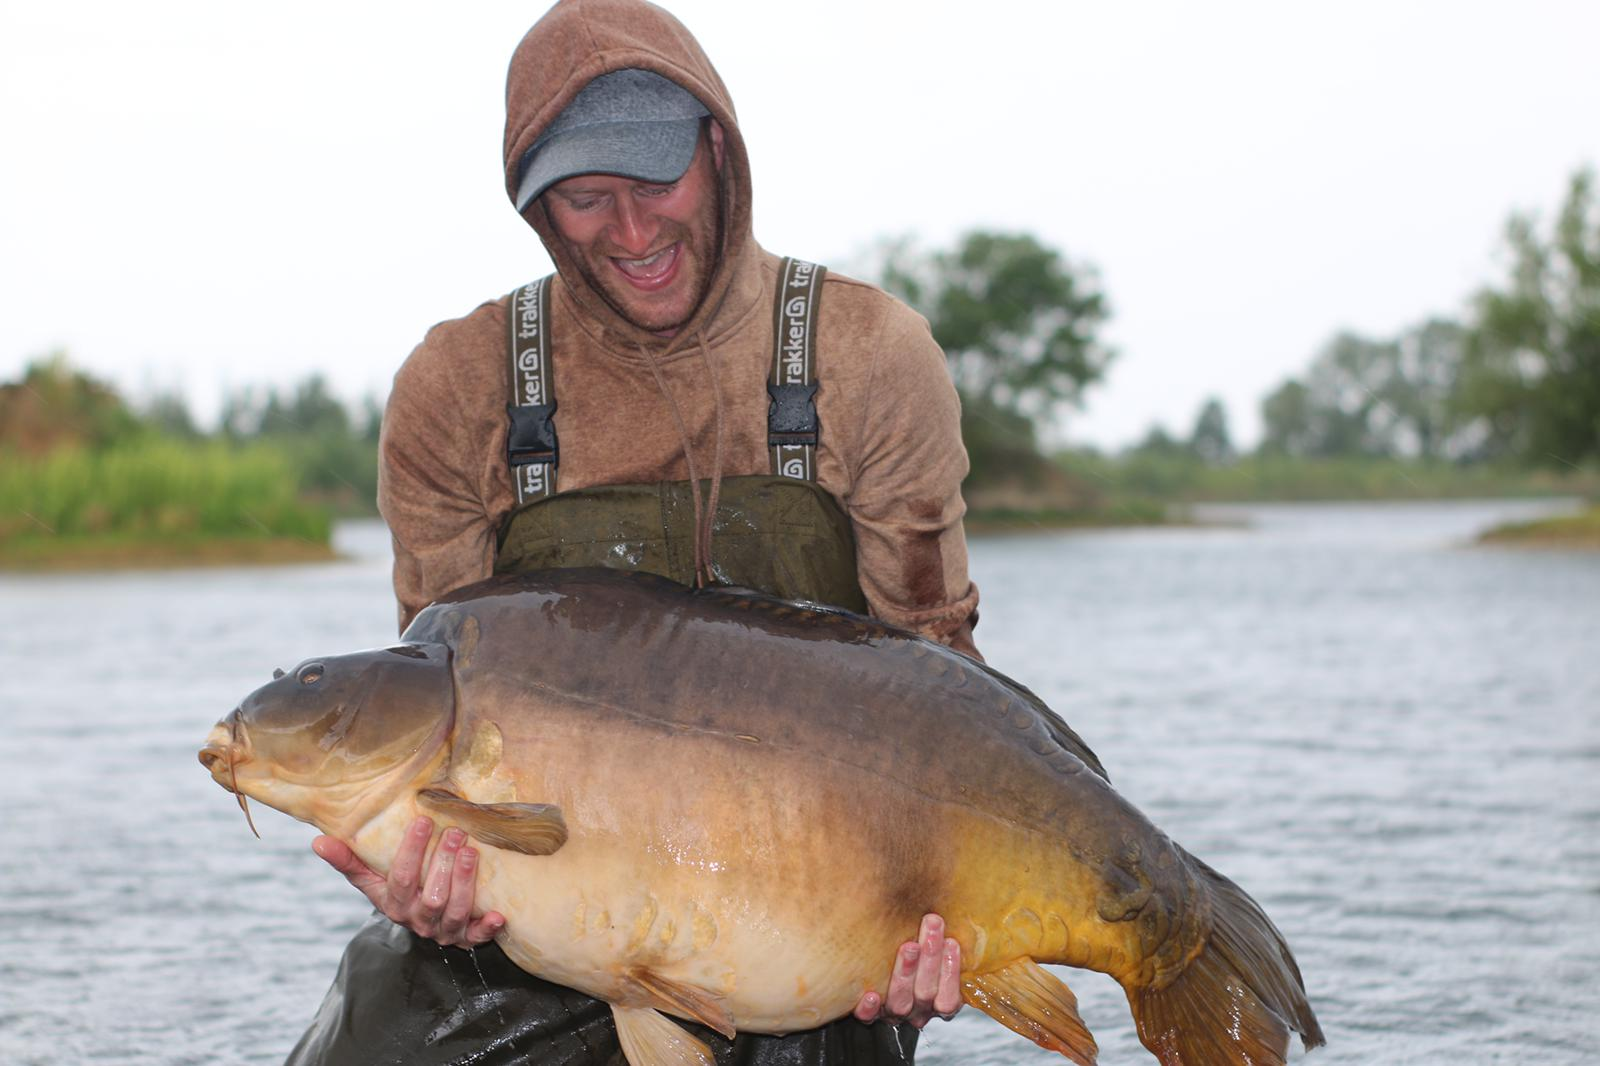 The monster mirror weighed 67lb 8oz